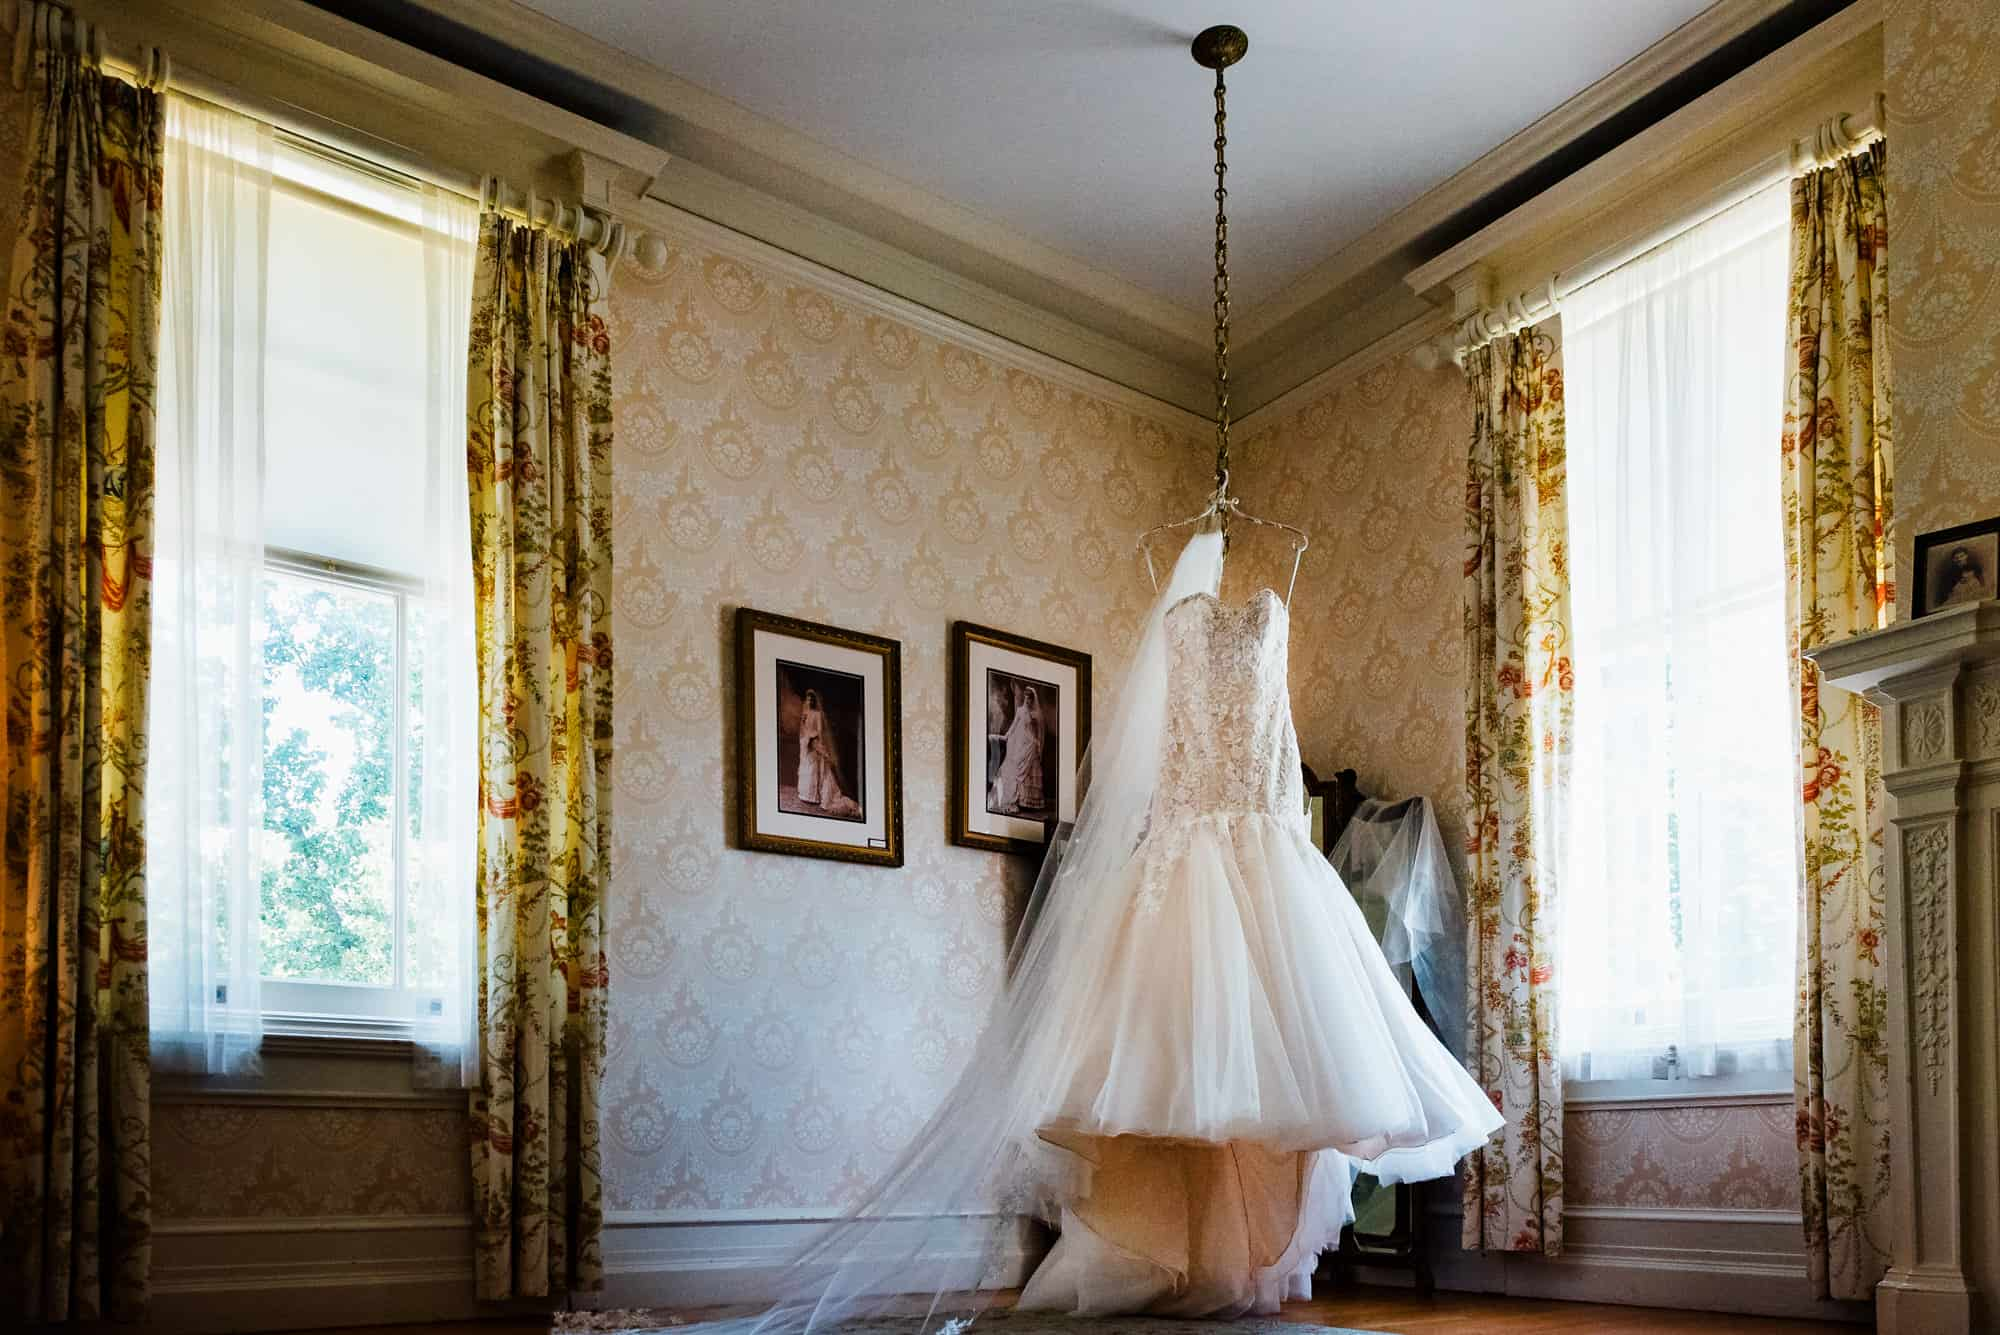 wedding dresses, dress hanging from ceiling